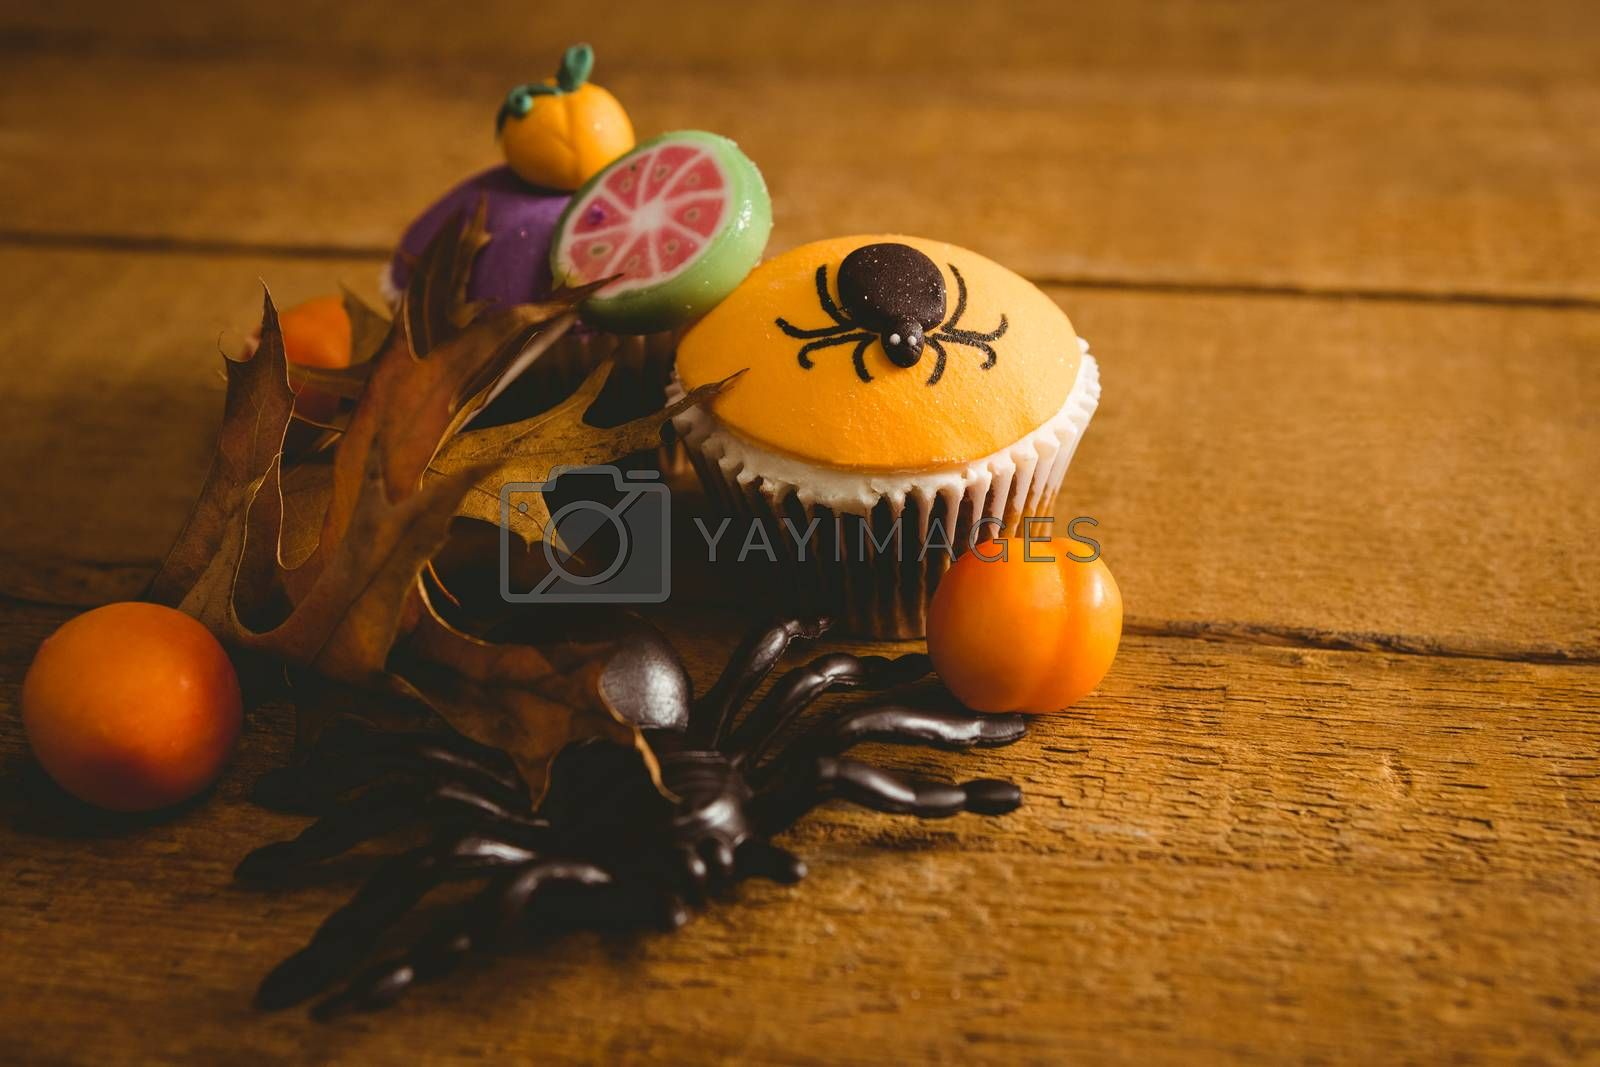 High angle view of Halloween decorations with cup cake on table